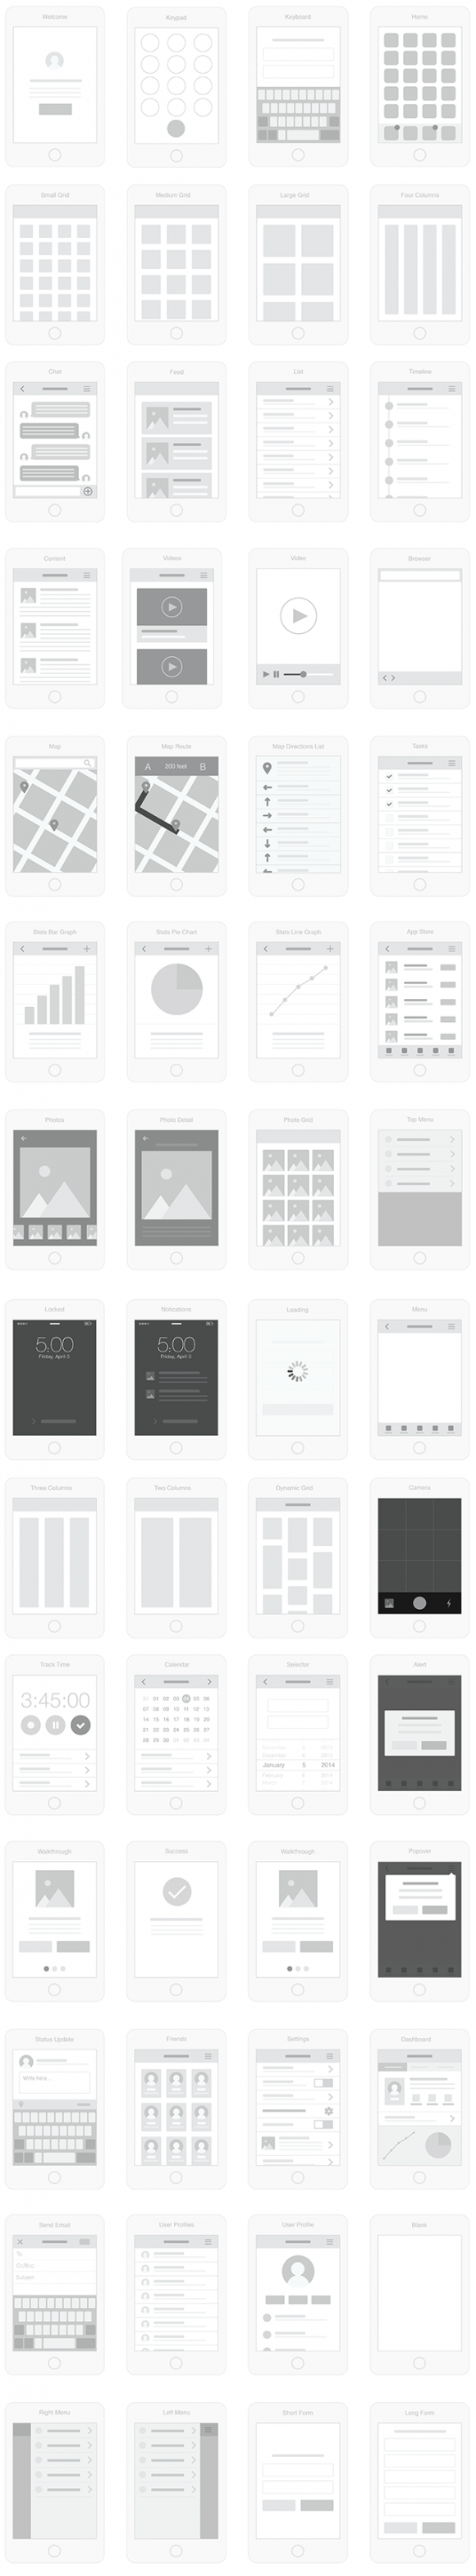 Mobile UI wireflow kit - Full Preview